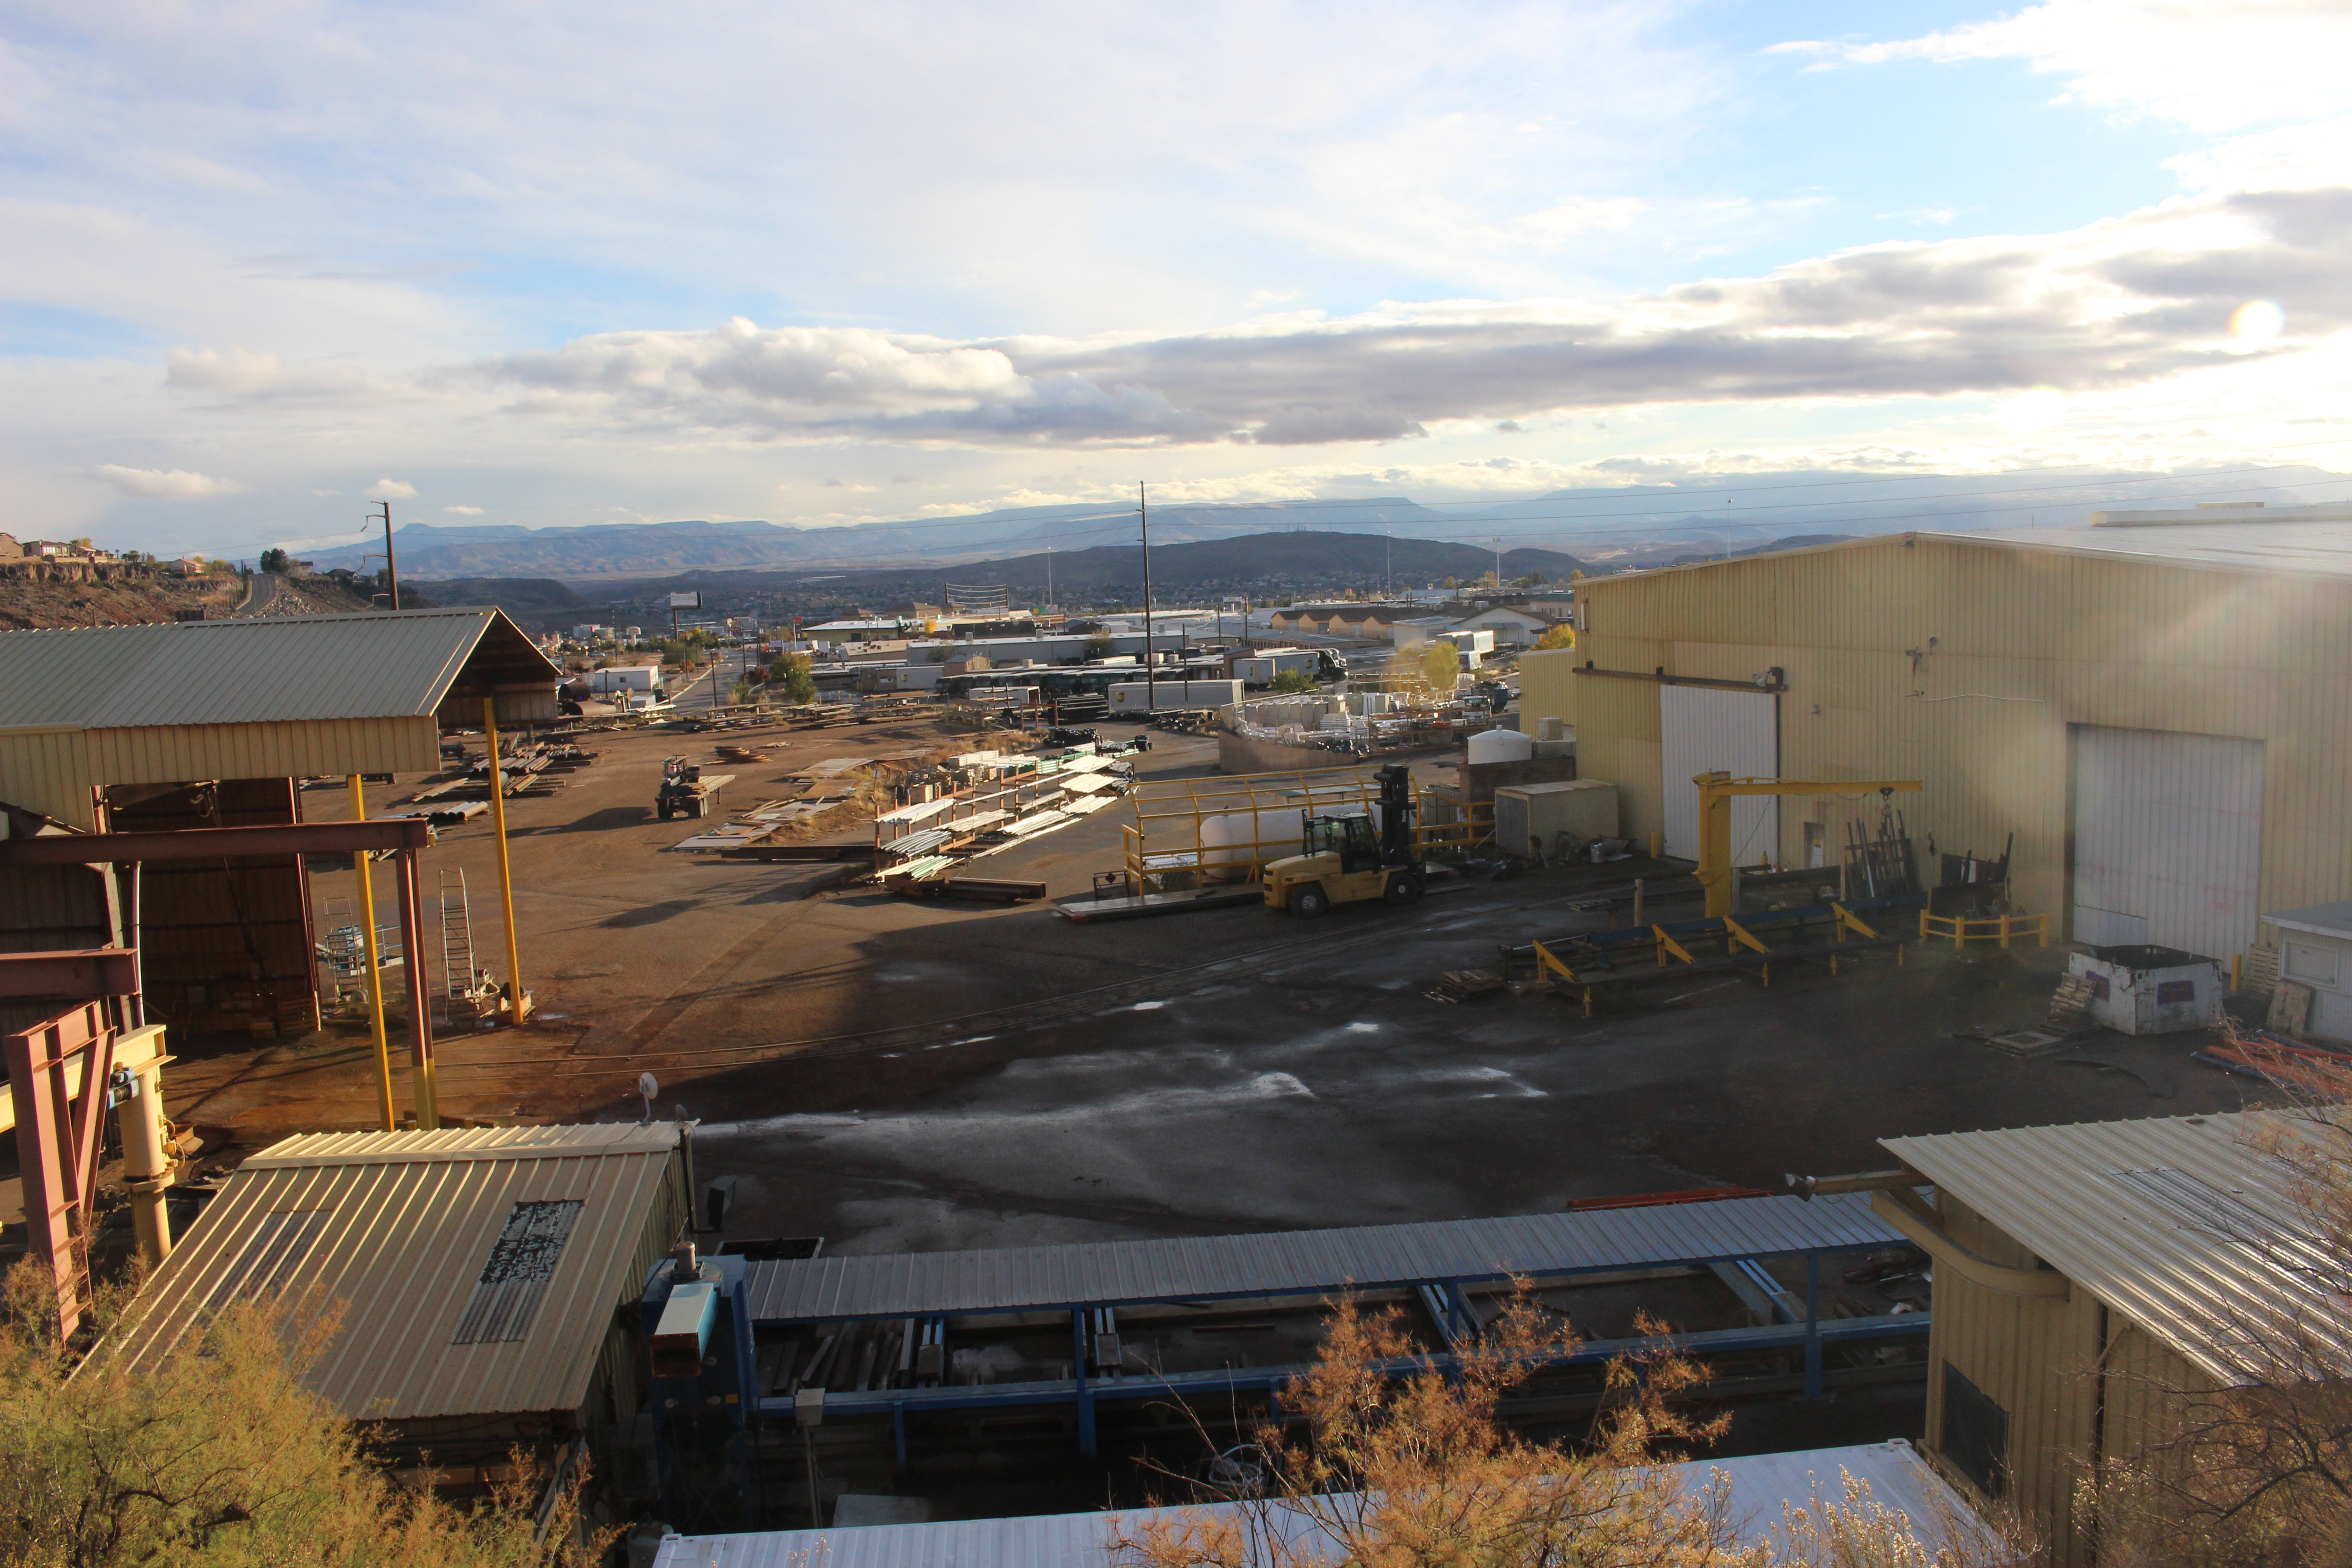 Express Metals Fabricators St. George Steel Division closes after its parent company, Express Group Holdings, filed for bankruptcy, St. George, Utah, Nov. 27, 2016 | Photo by Joseph Witham, St. George News